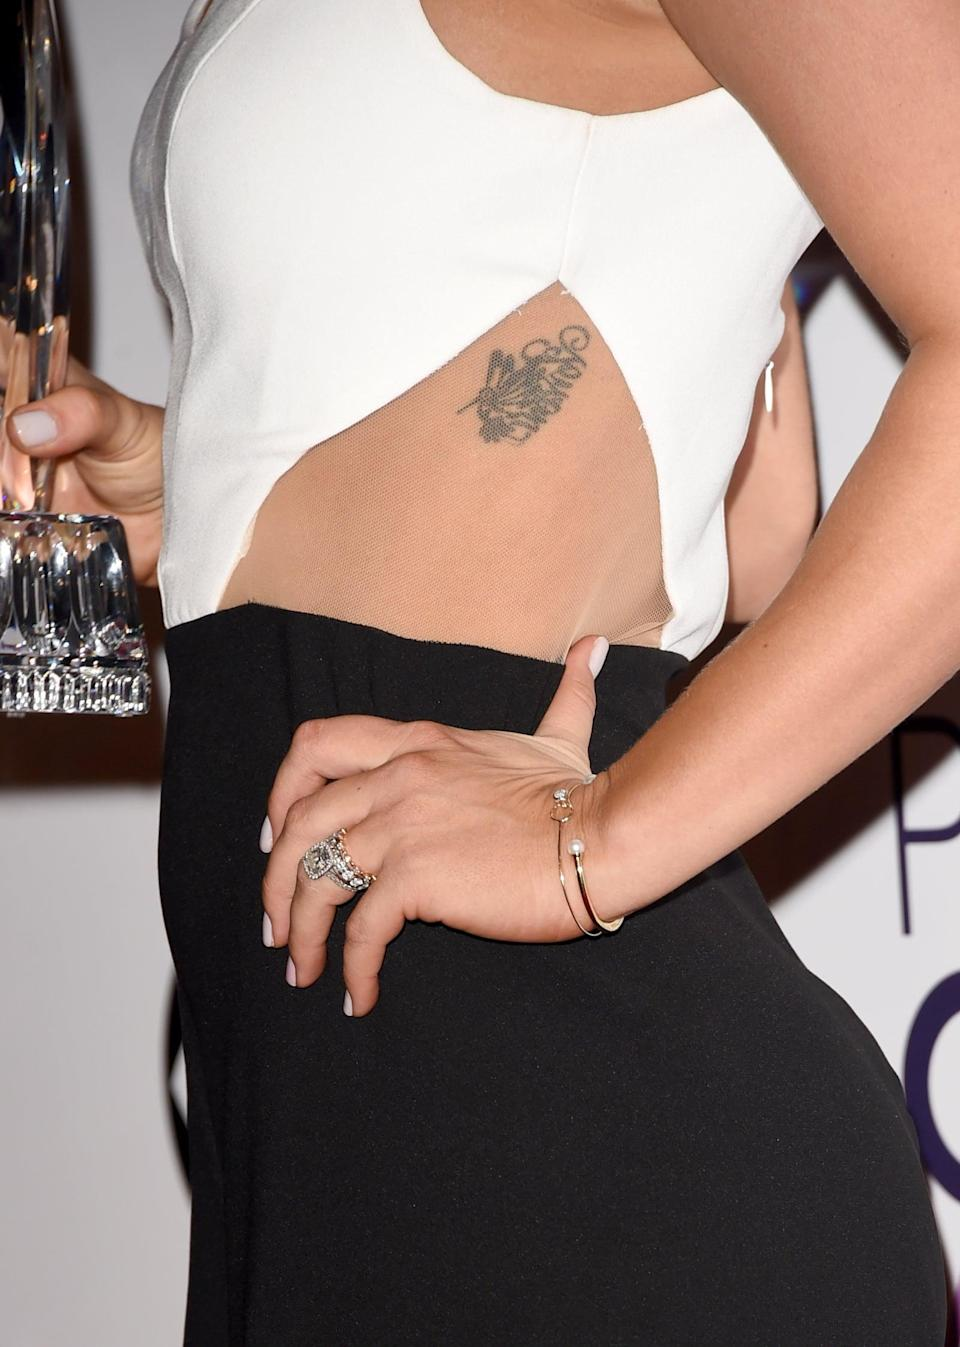 Kaley Cuoco's Bird Tattoo